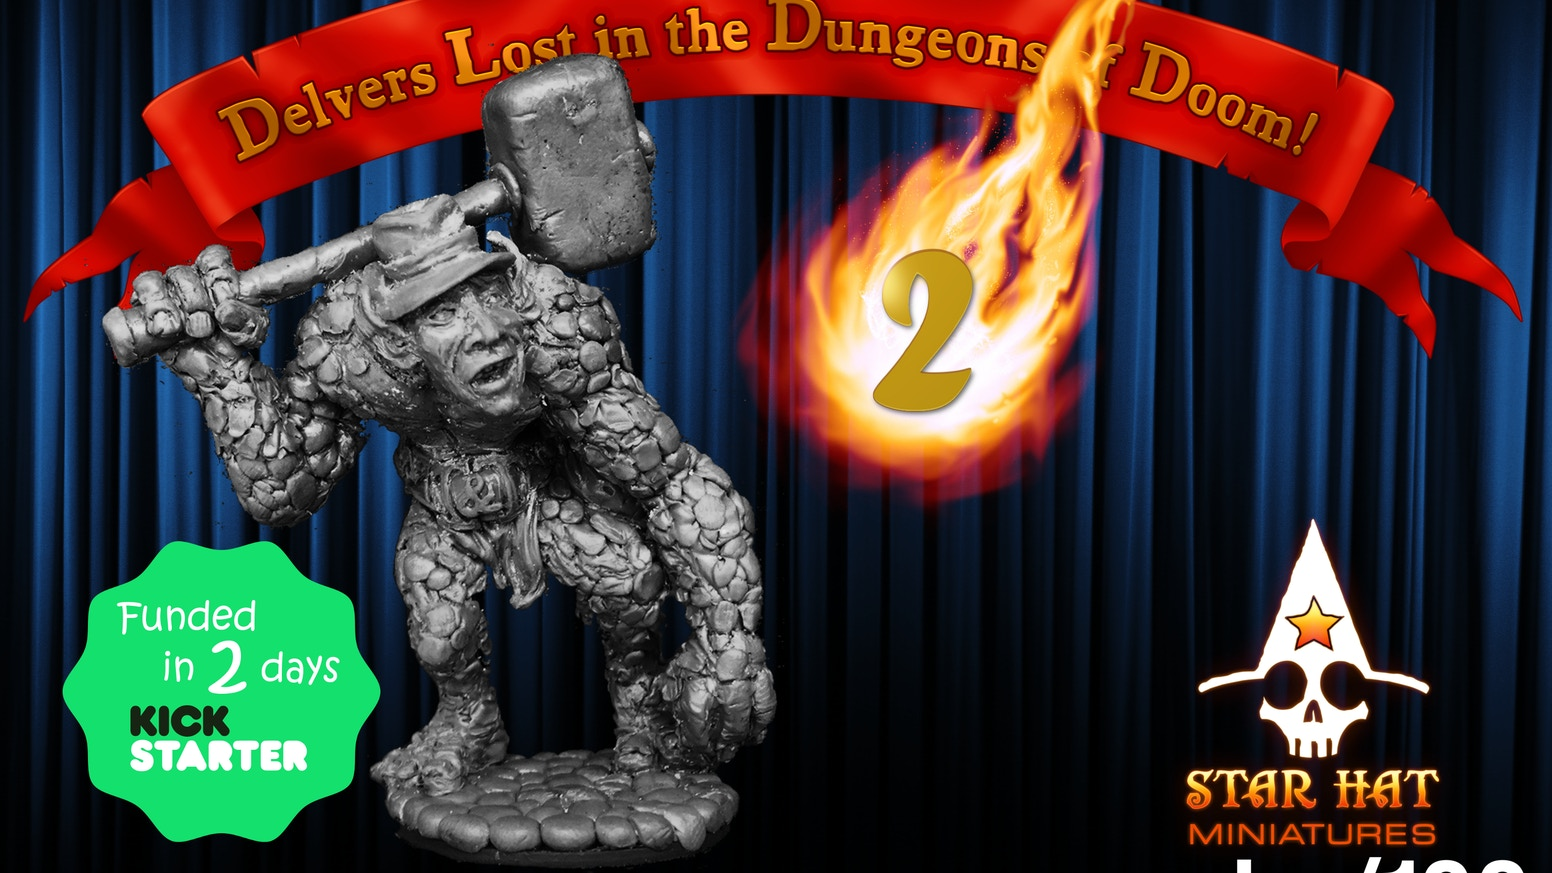 Delvers Lost in the Dungeons of Doom! 2 Heroic scale fantasy miniatures, sculpted by hand and cast in metal, for use in Tabletop Games.